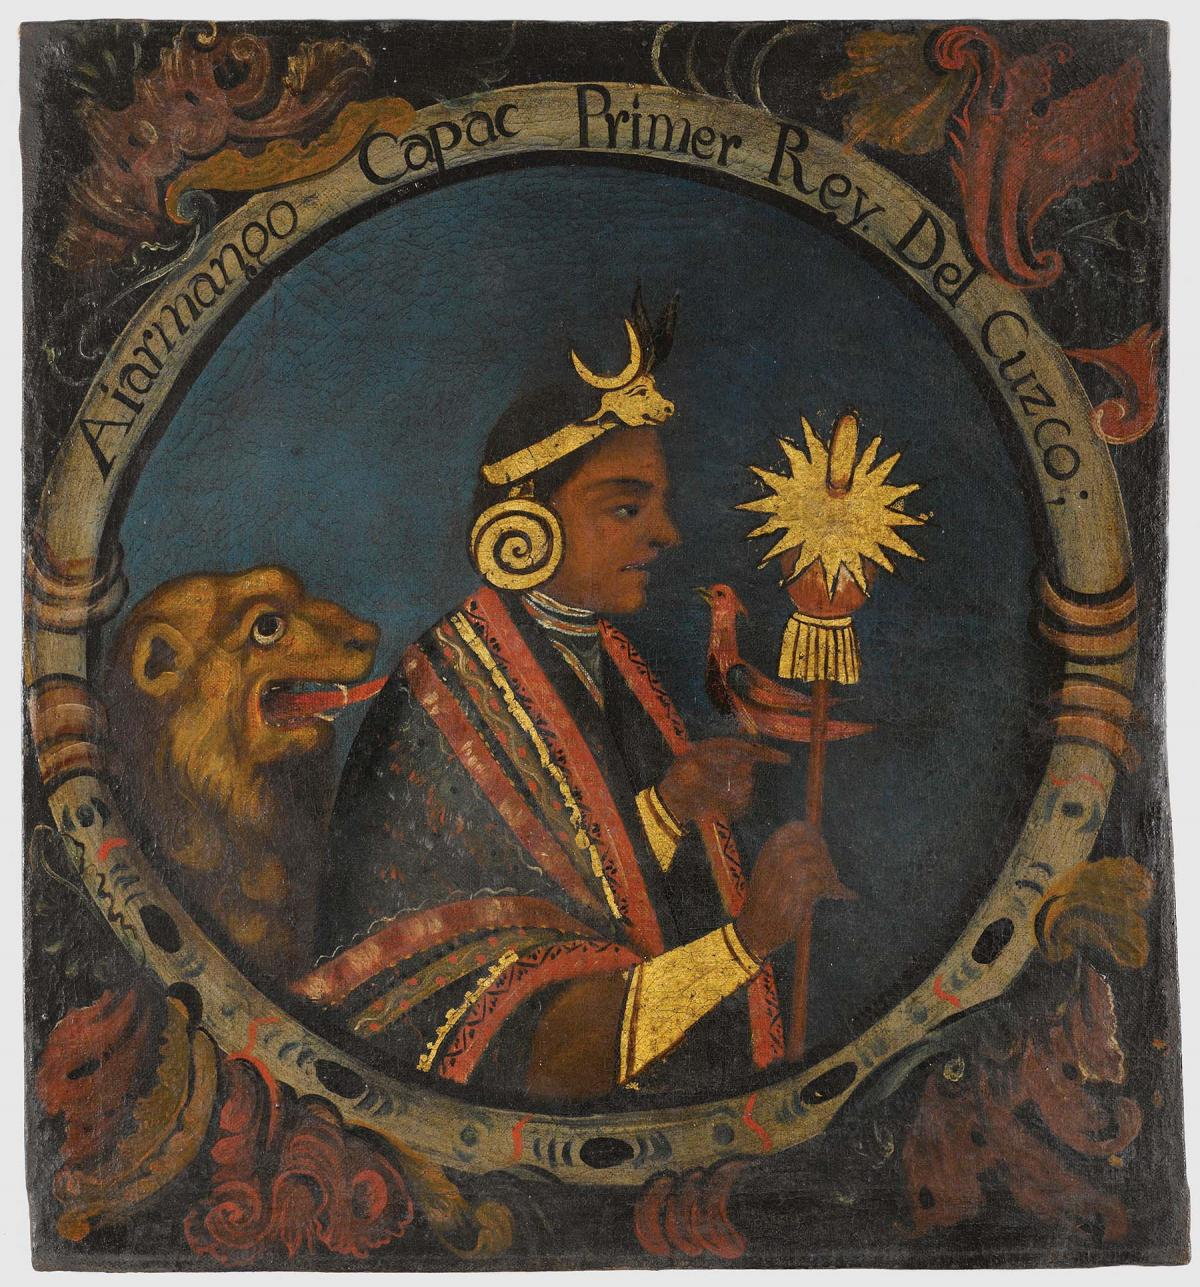 Incan king in profile, wearing a gold crown, holding a gold, sun-topped scepter, with a lion sitting behind him